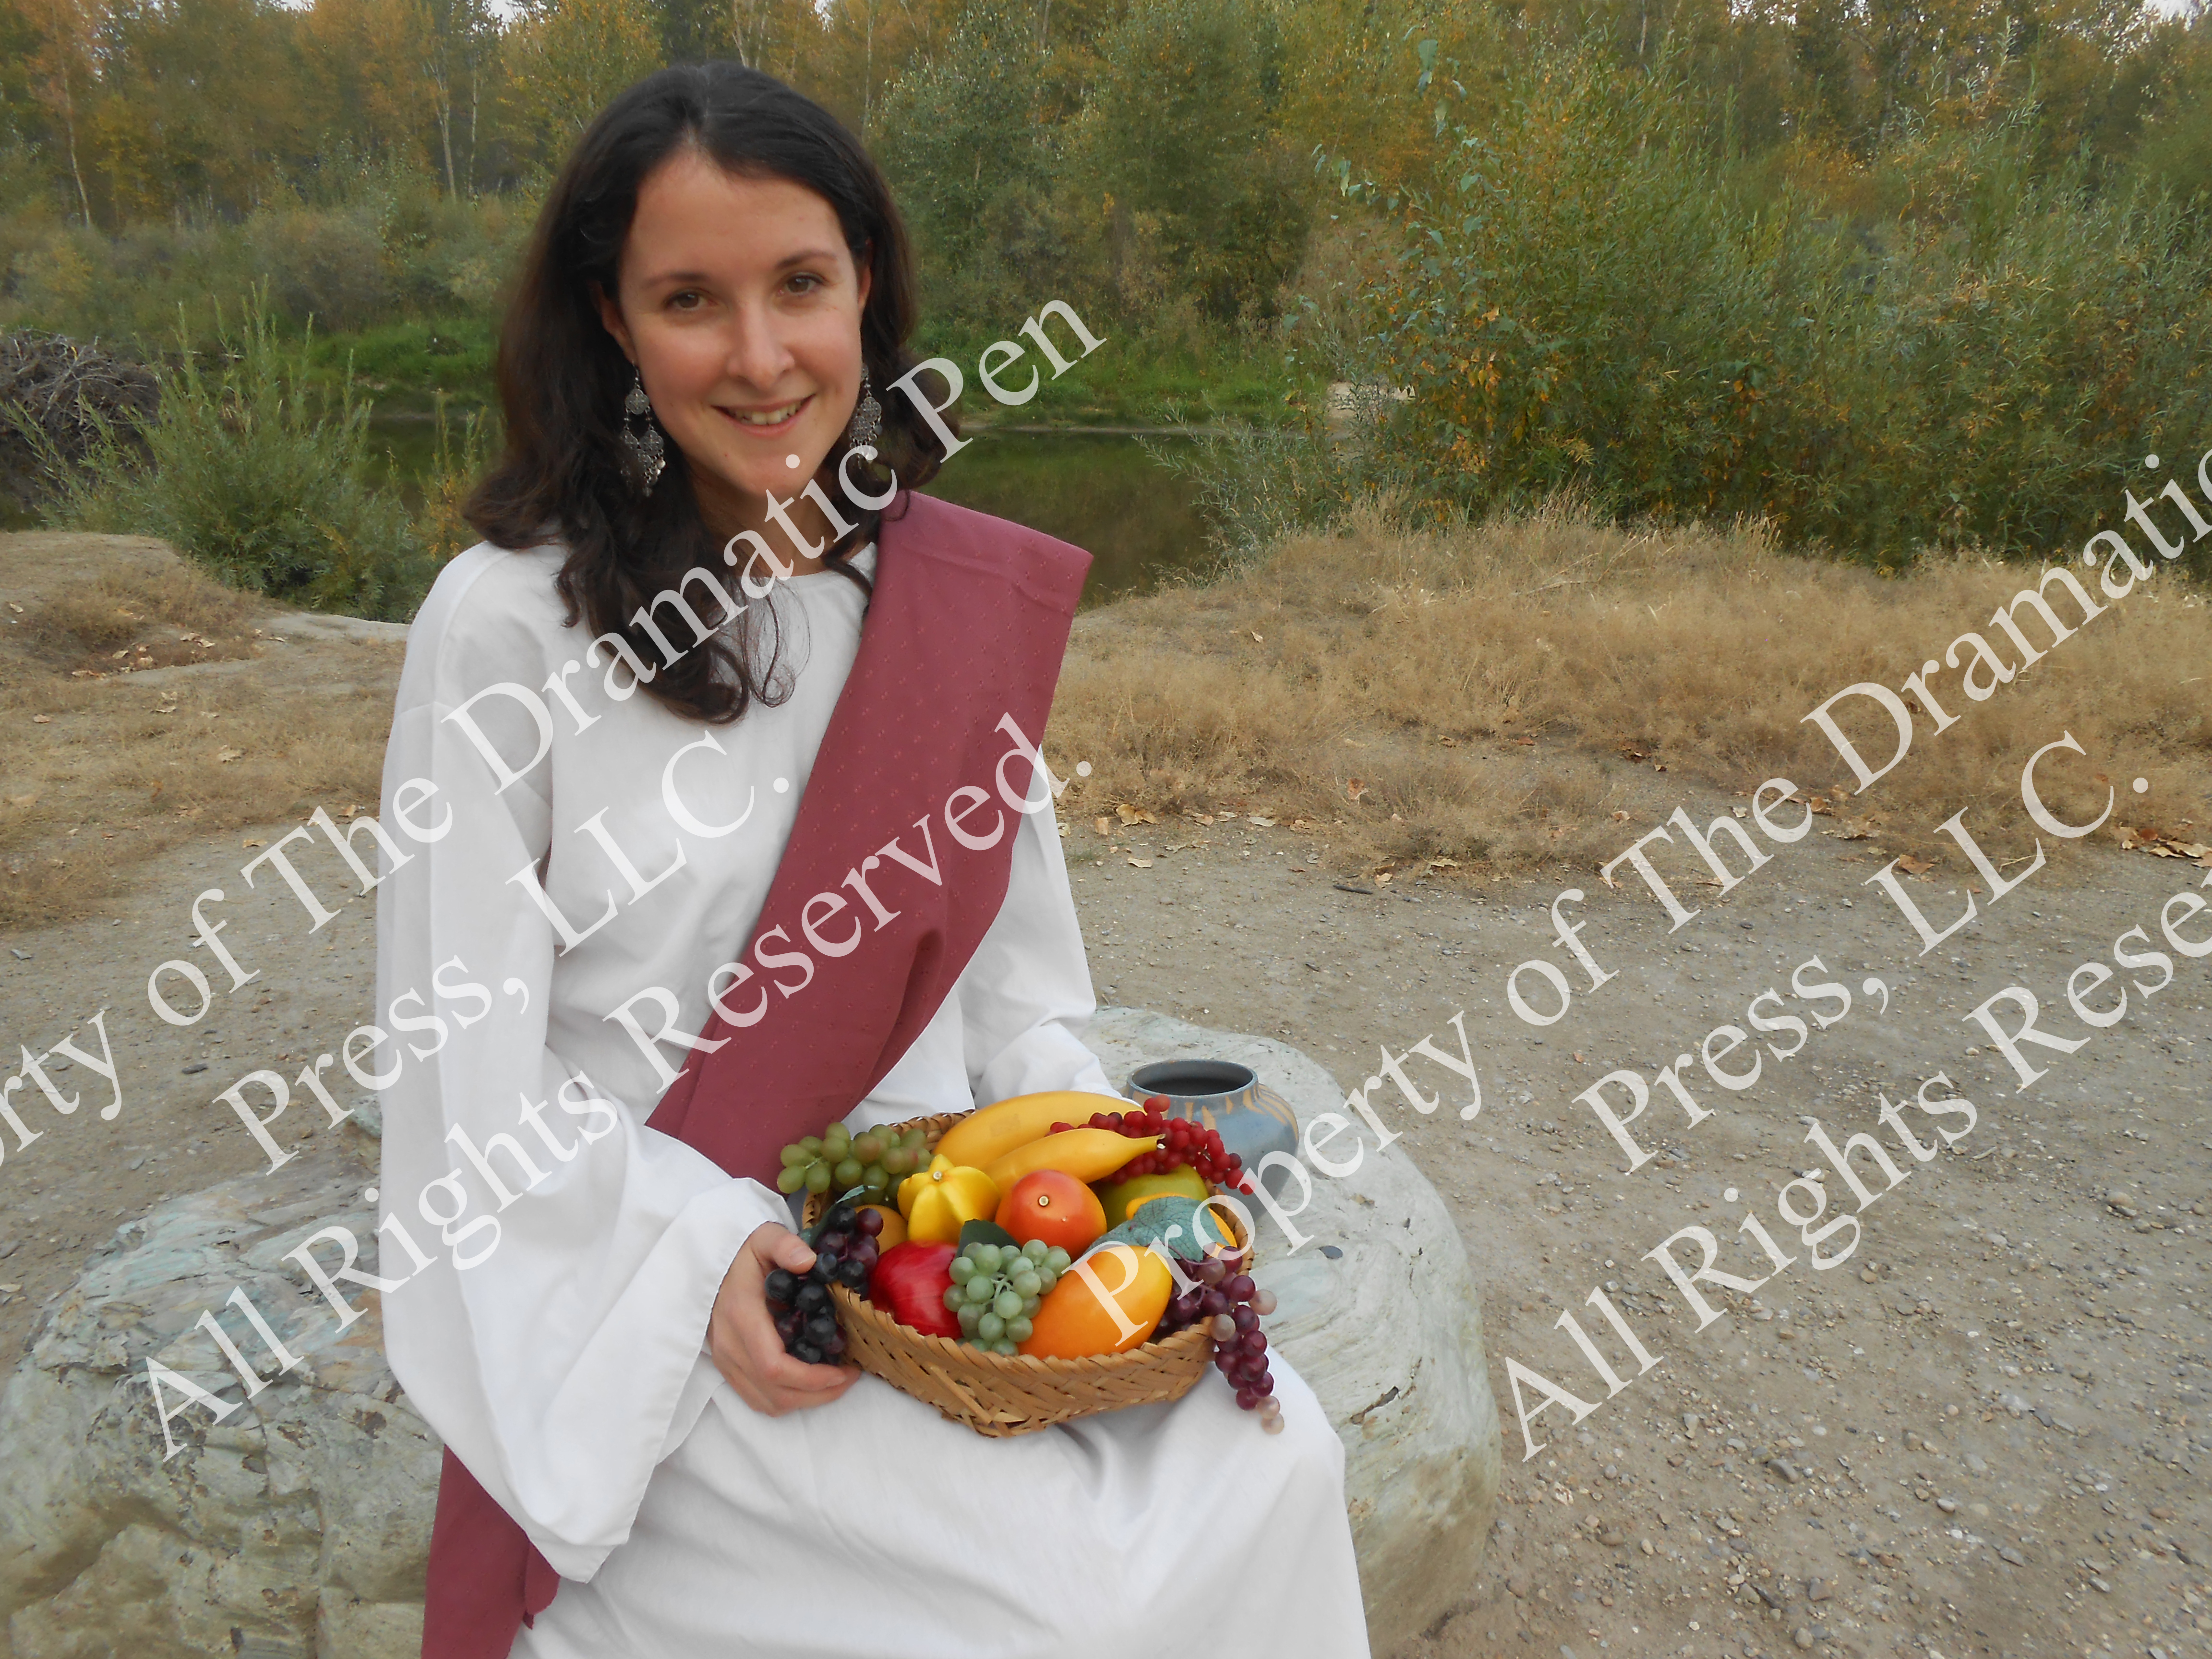 Biblical Woman Smiling with Fruit